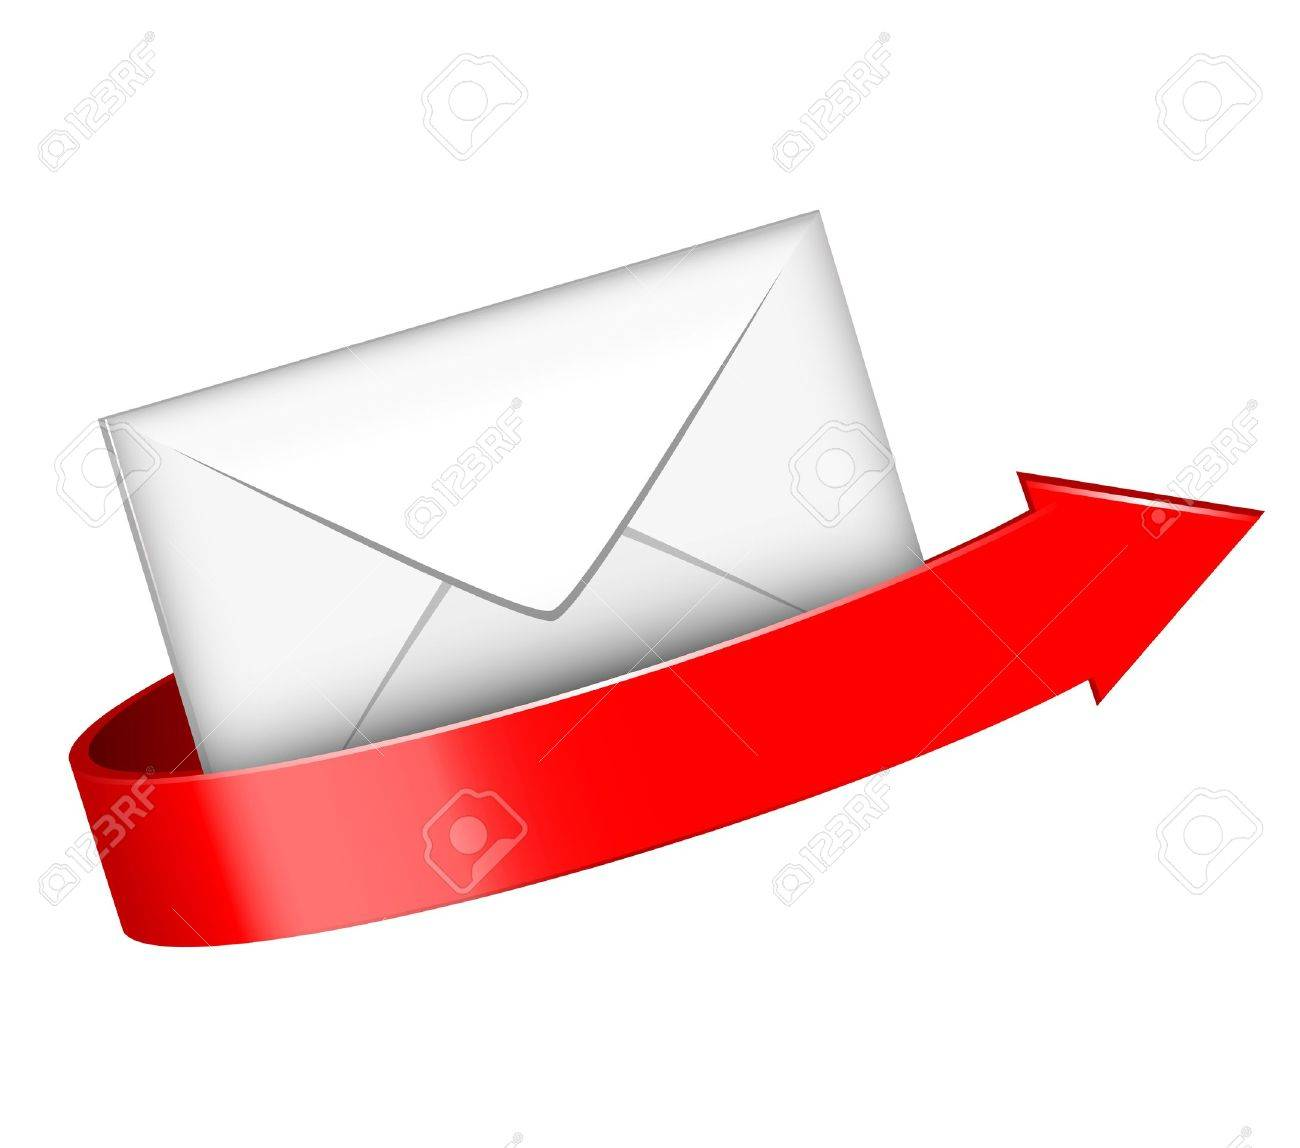 illustration of envelope and red arrow Stock Vector - 16196178